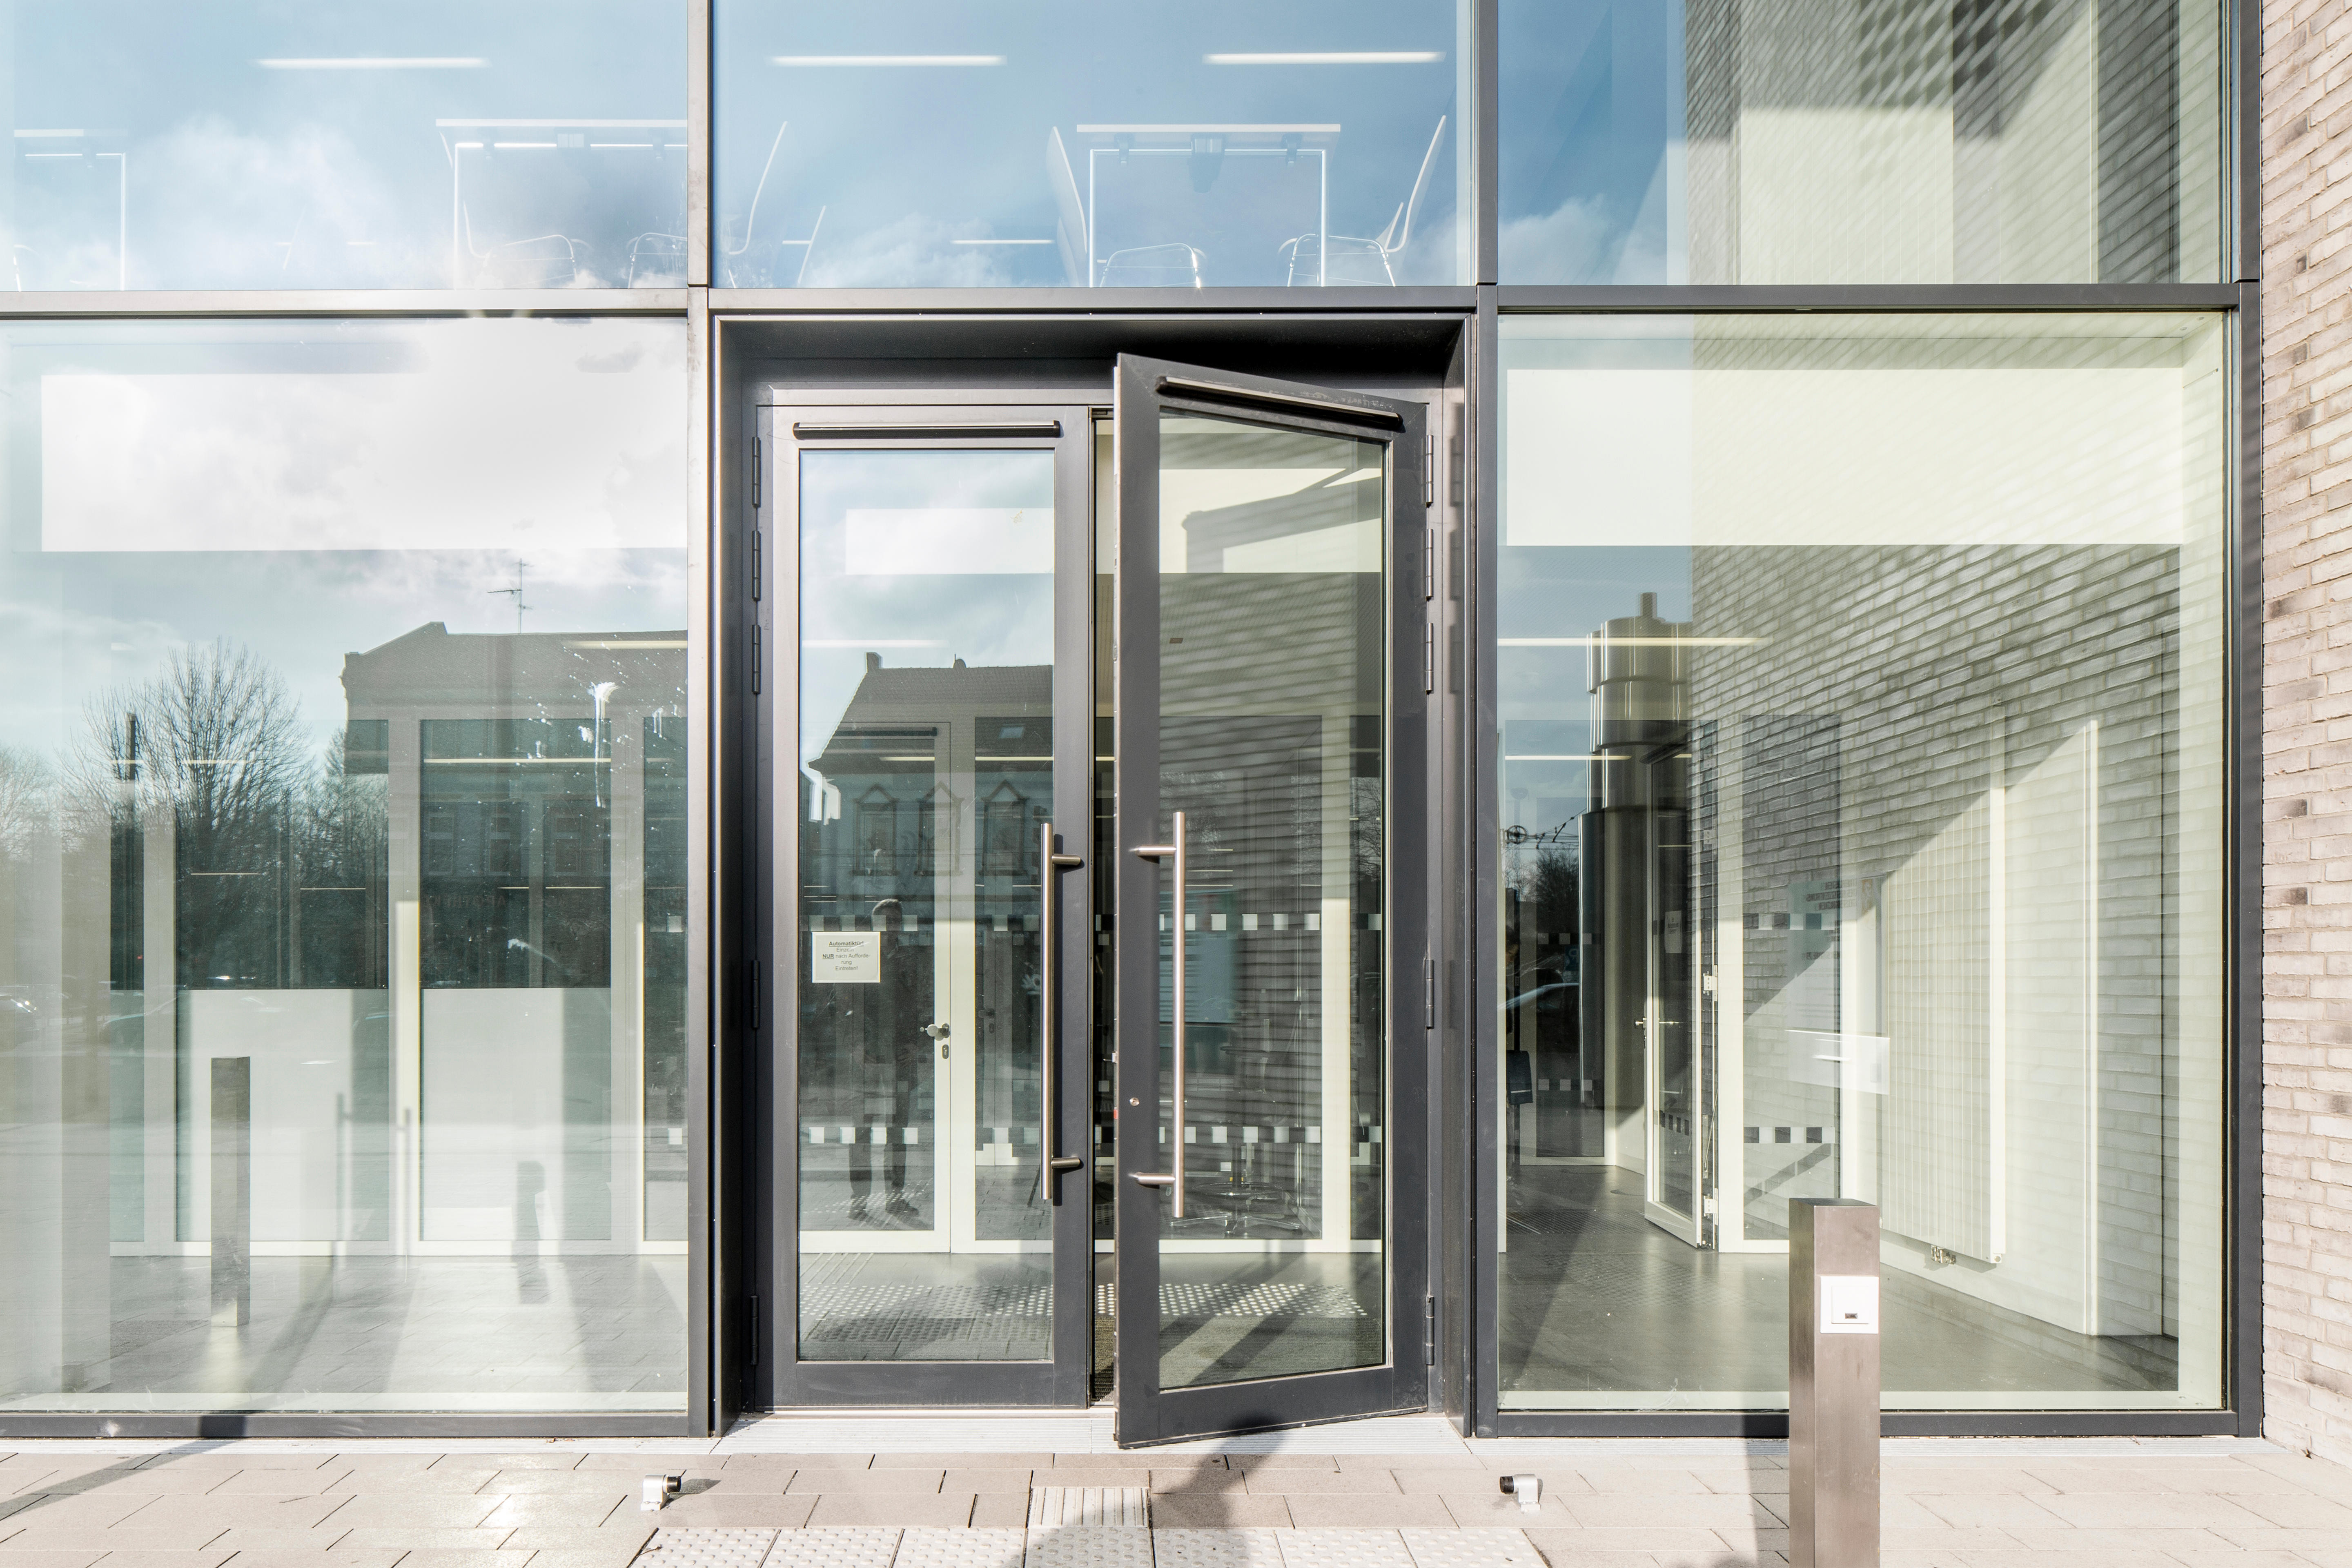 Construction of the new courthouse in Gelsenkirchen & Welcoming Vibes - Doors Suppliers - Page 3 of 6 - Design Middle East